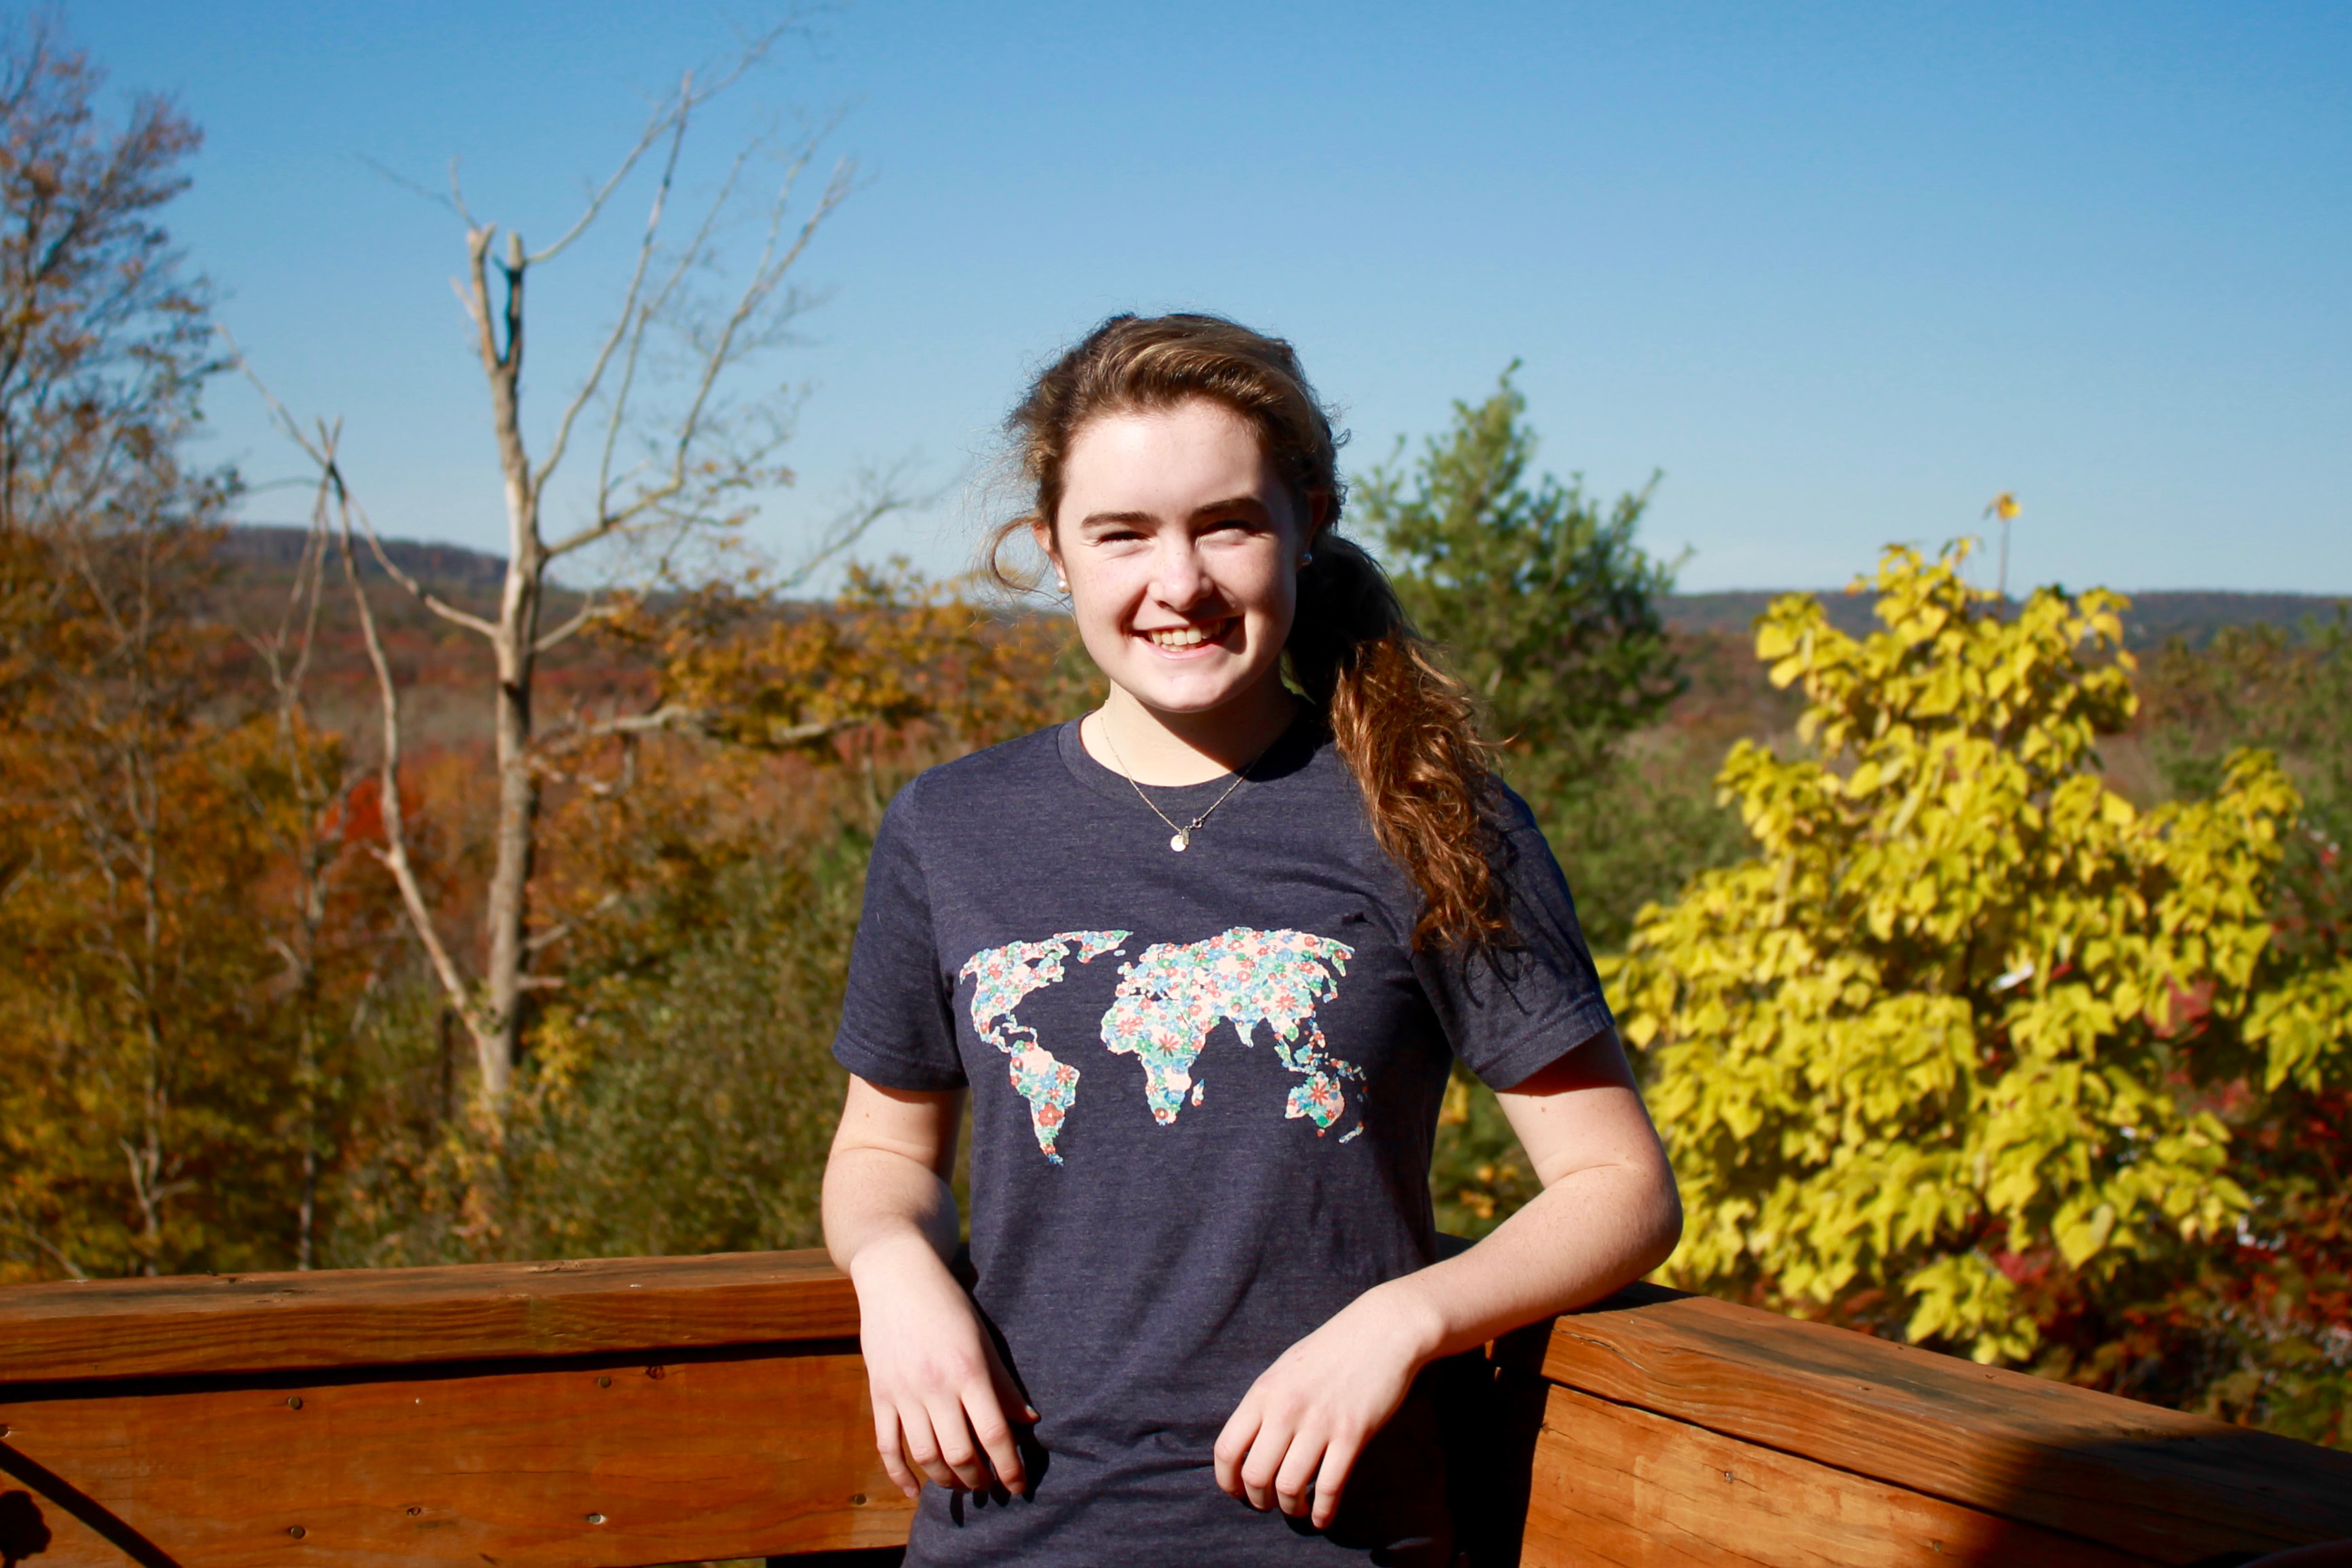 Durham teenager Kaitlyn Leahy launched a t-shirt business this month to help in the fight against hunger. Leahy is pictured wearing one of her Heart over Hunger shirts. | Mark Dionne, Town Times